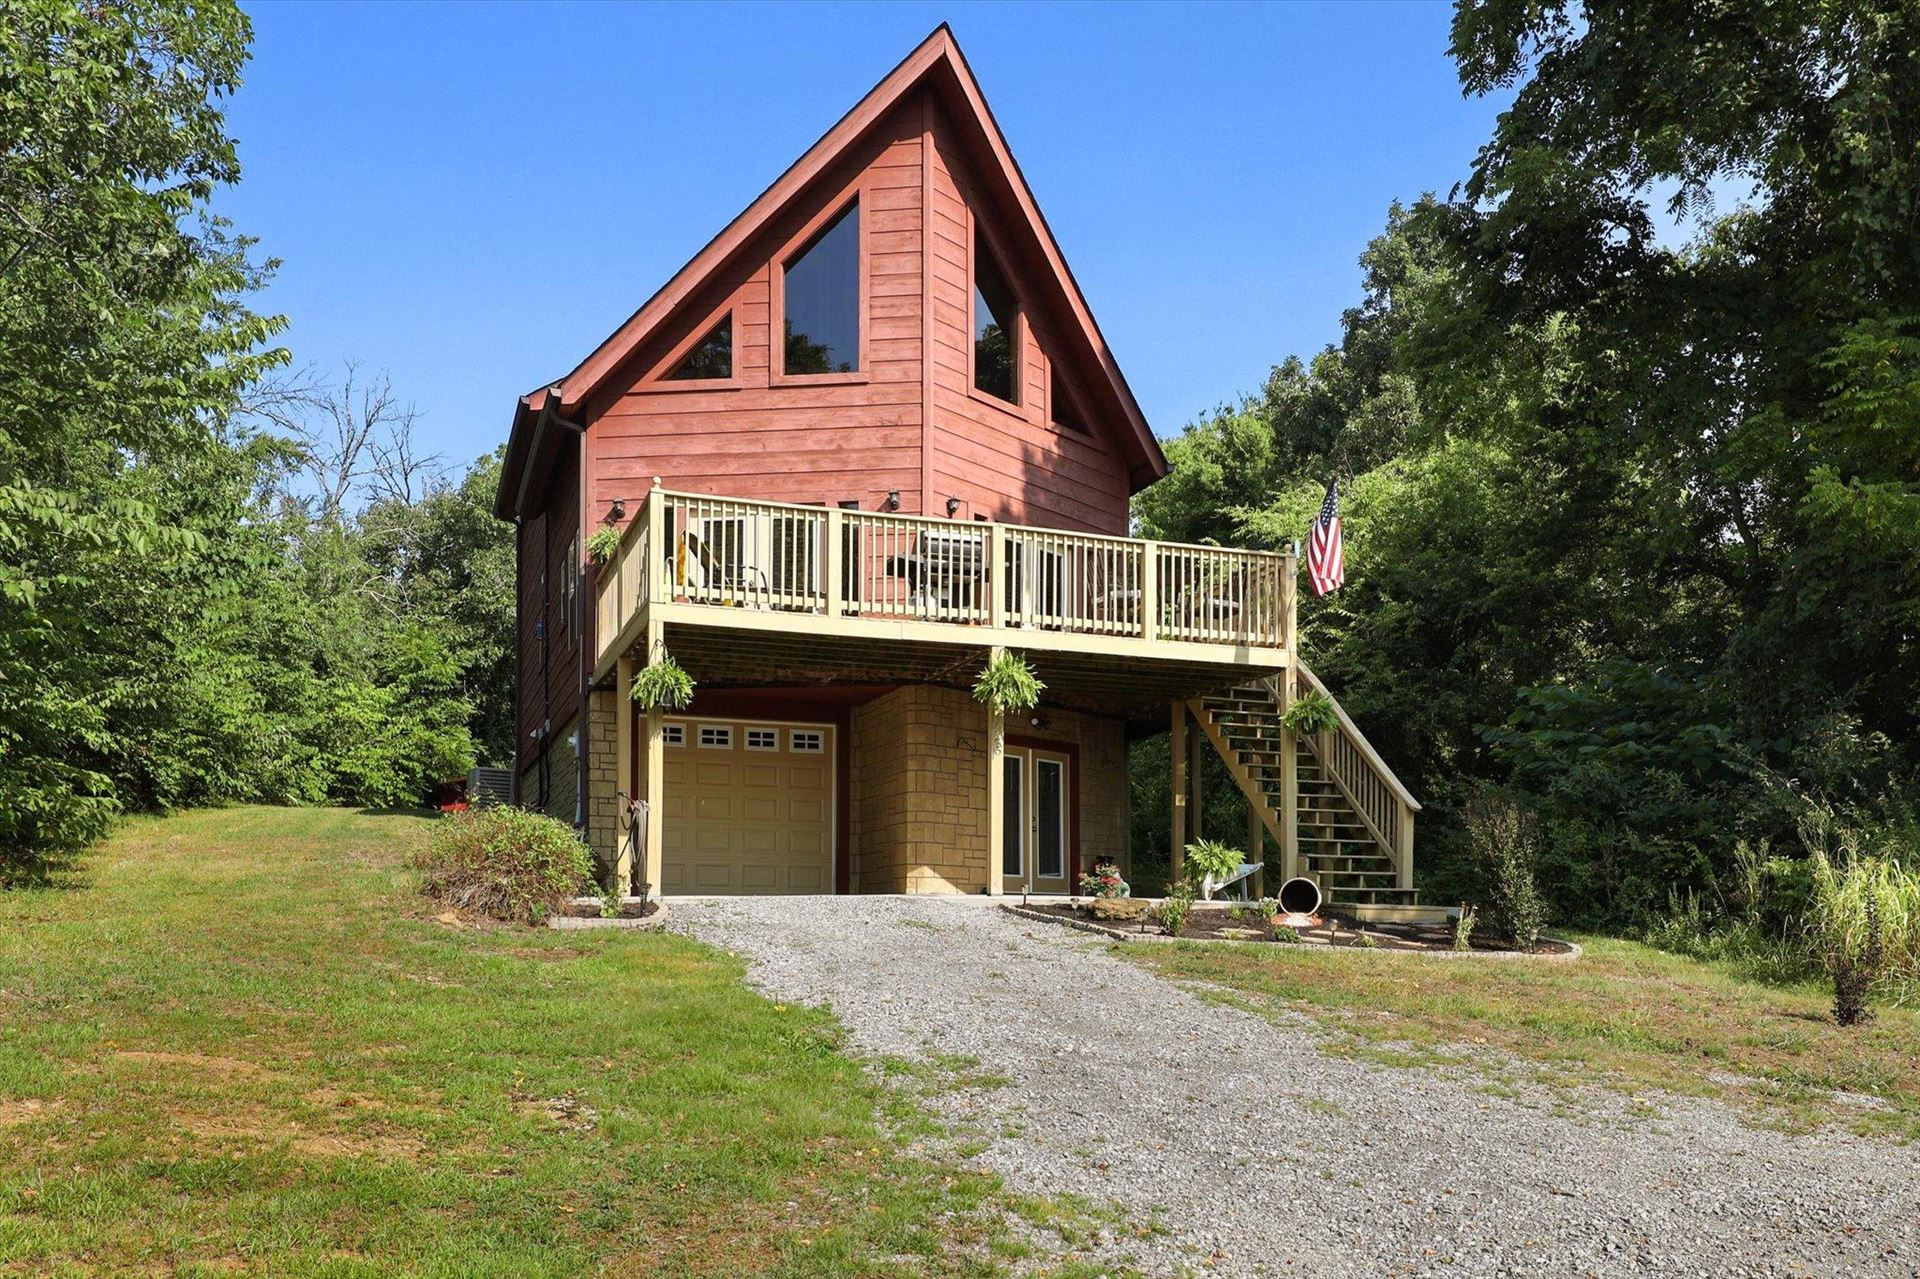 Photo of 945 Cedear Springs Valley Rd, Sevierville, TN 37876 (MLS # 1162244)